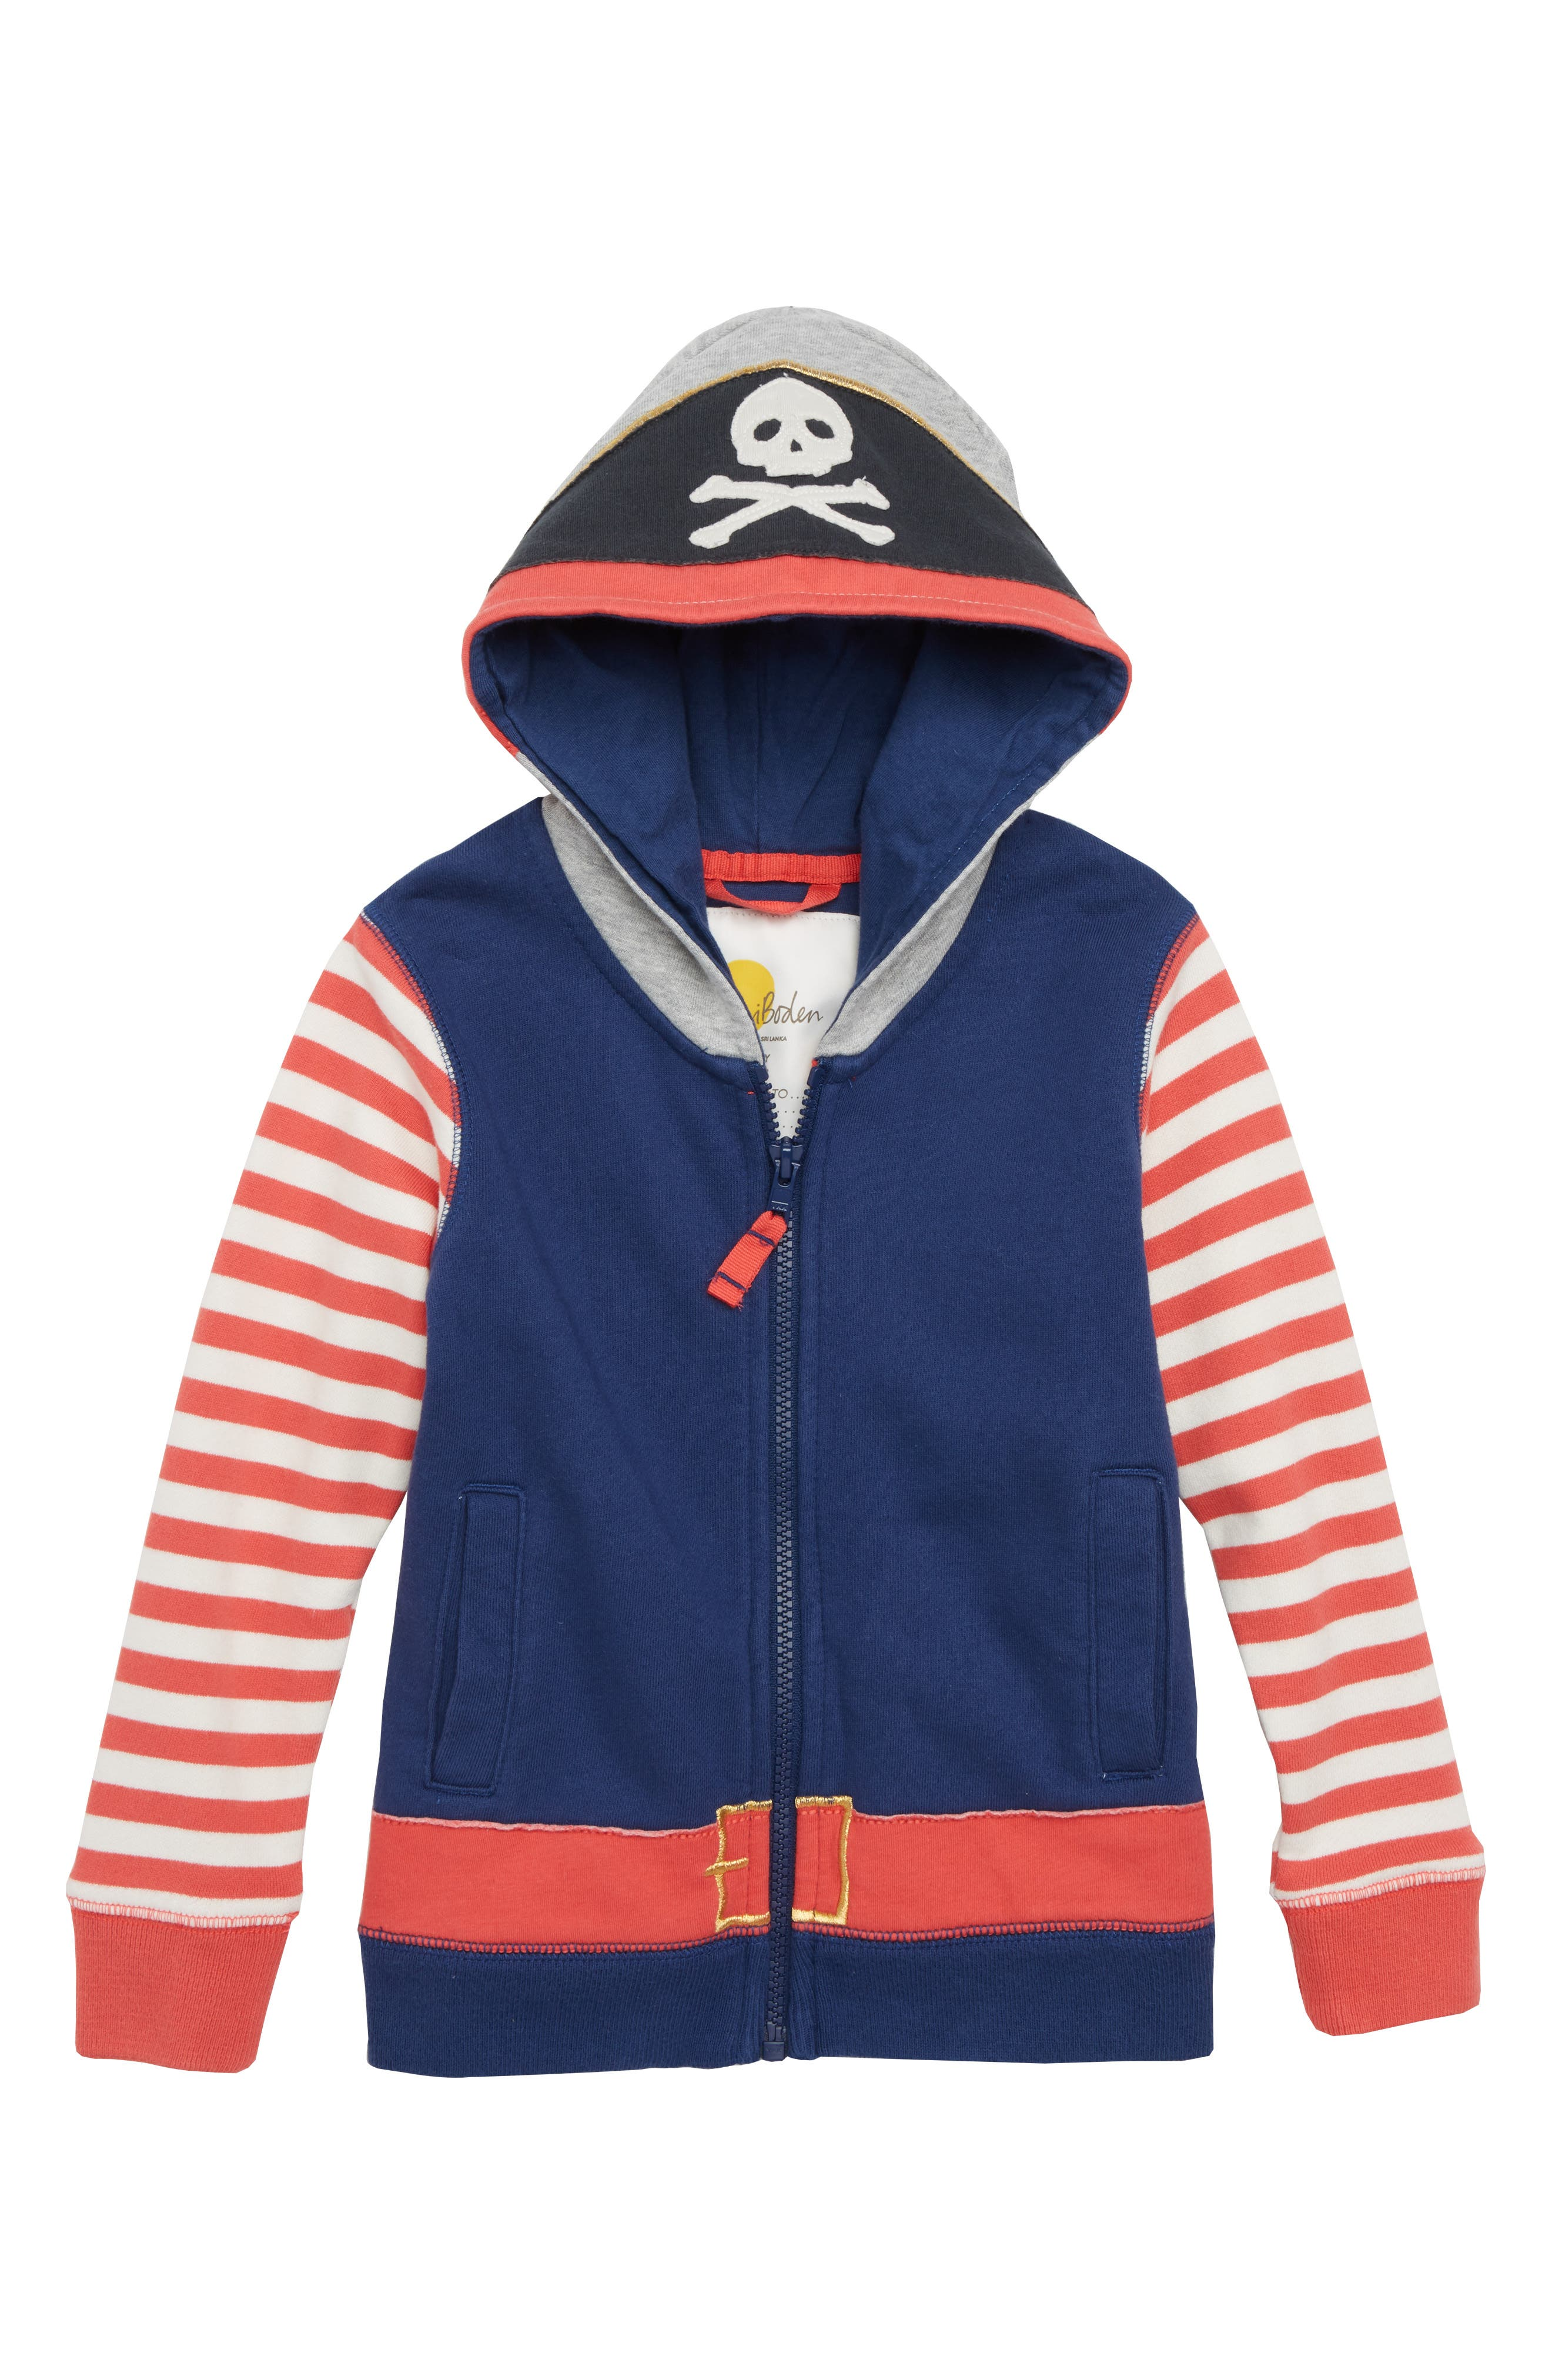 Novelty Pirate Hoodie,                             Main thumbnail 1, color,                             414